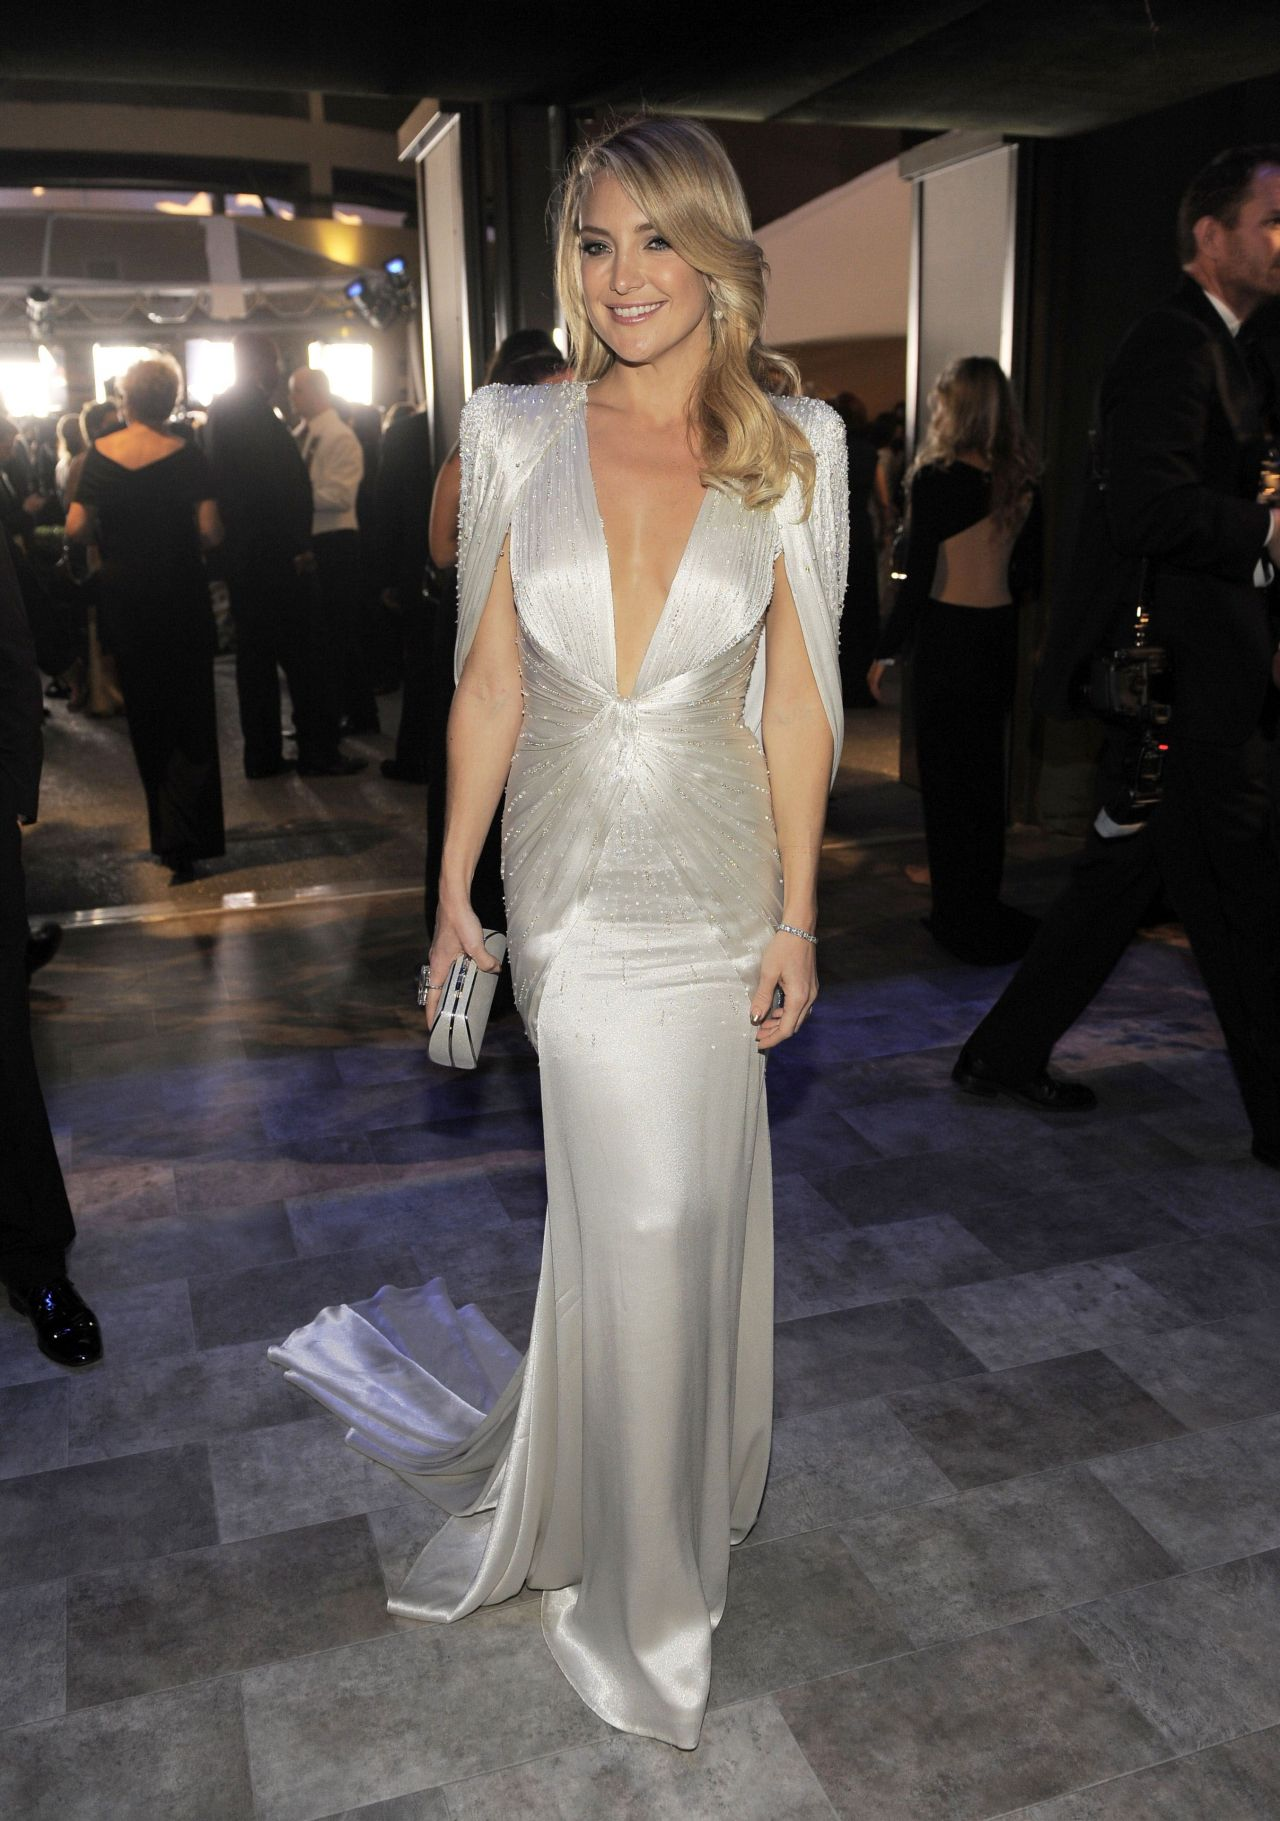 Kate Hudson at Governors Ball - March 2014